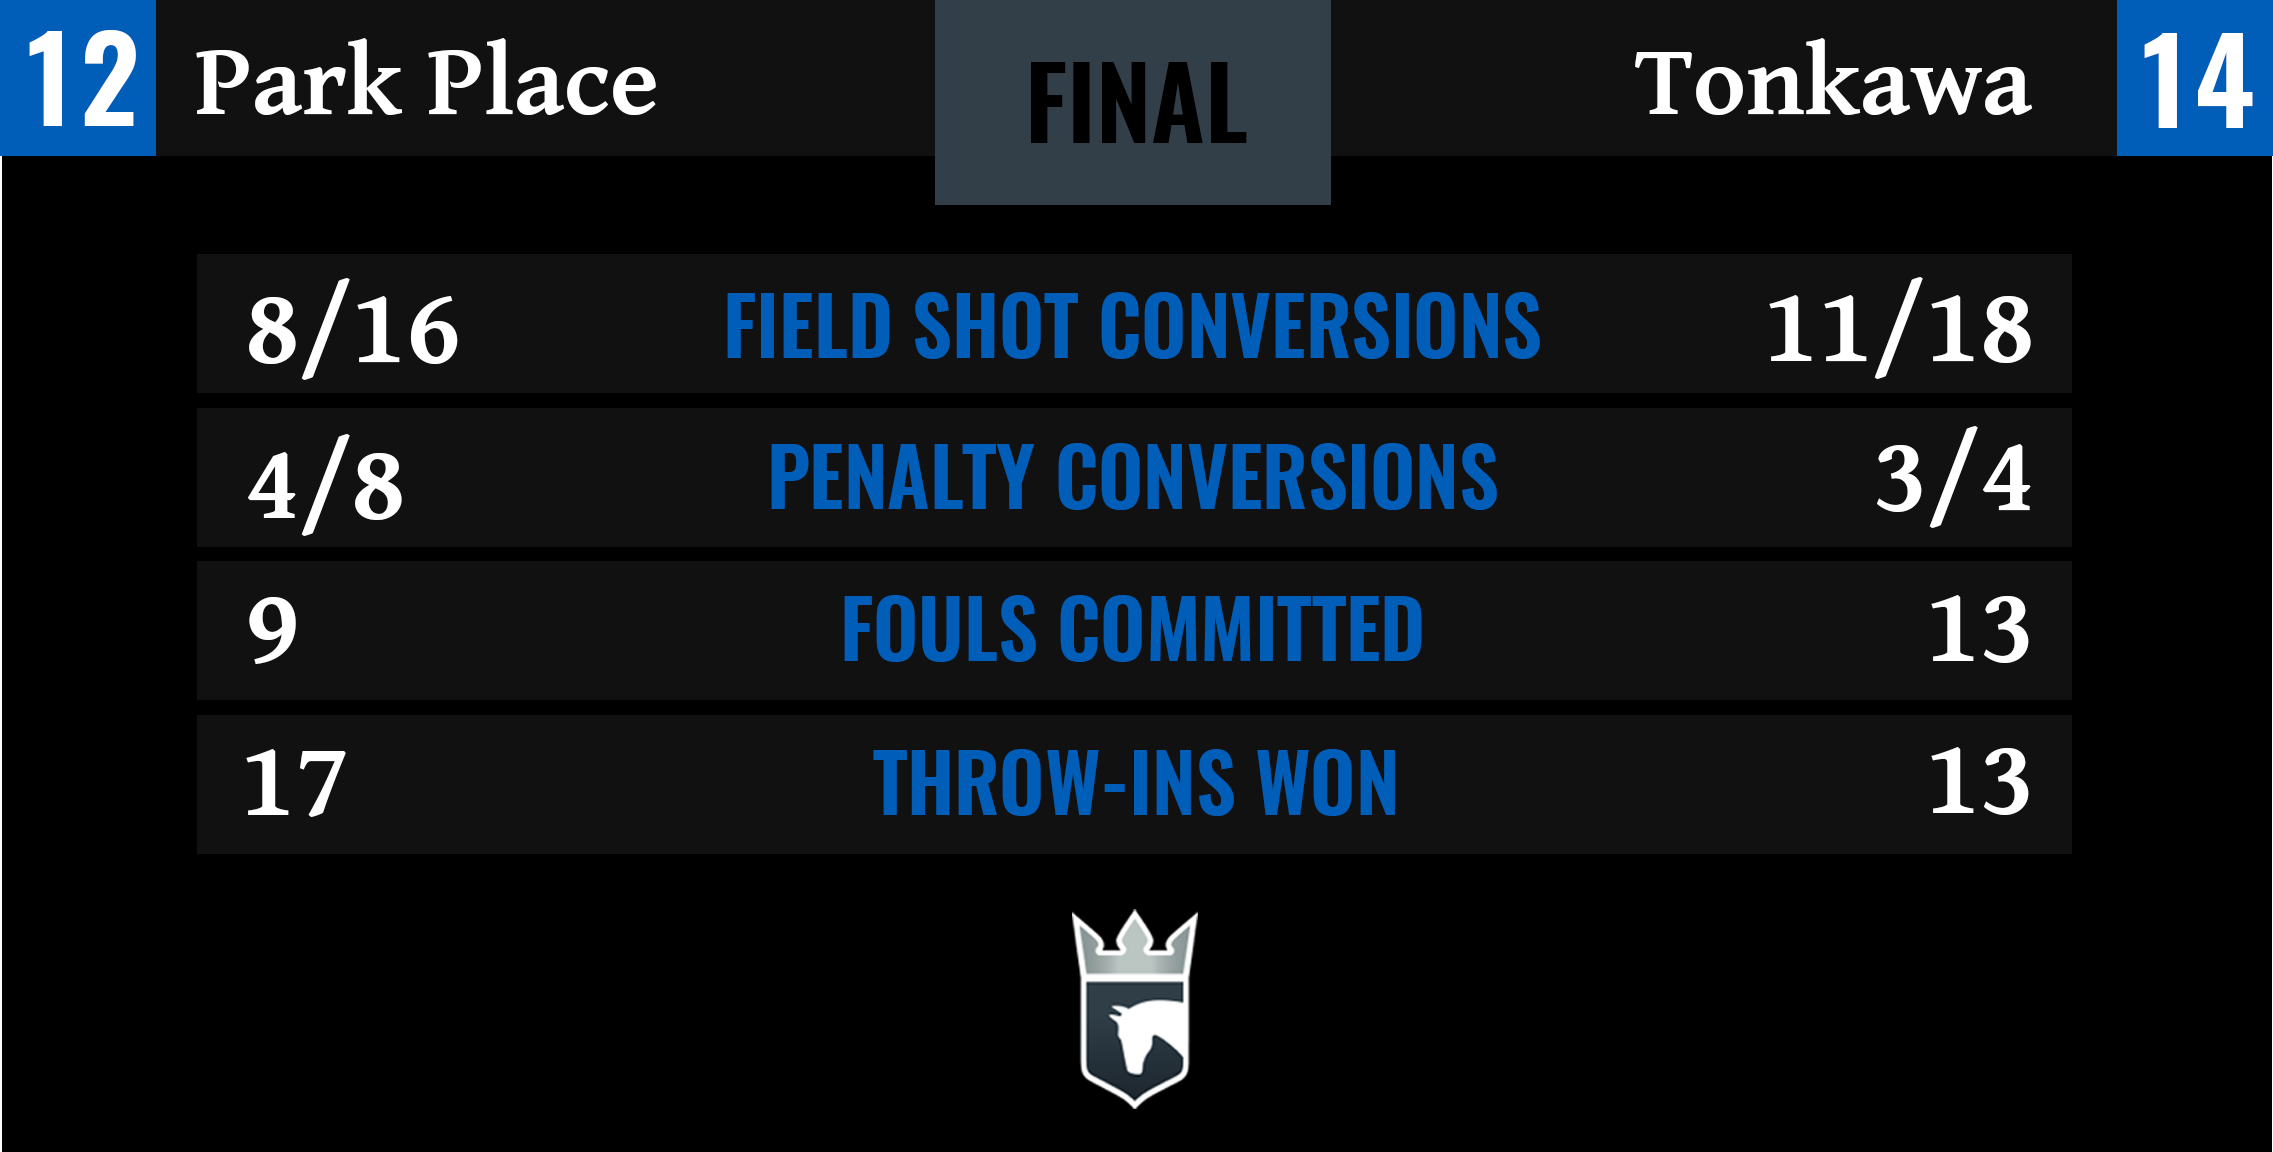 Park Place vs Tonkawa Final Stats